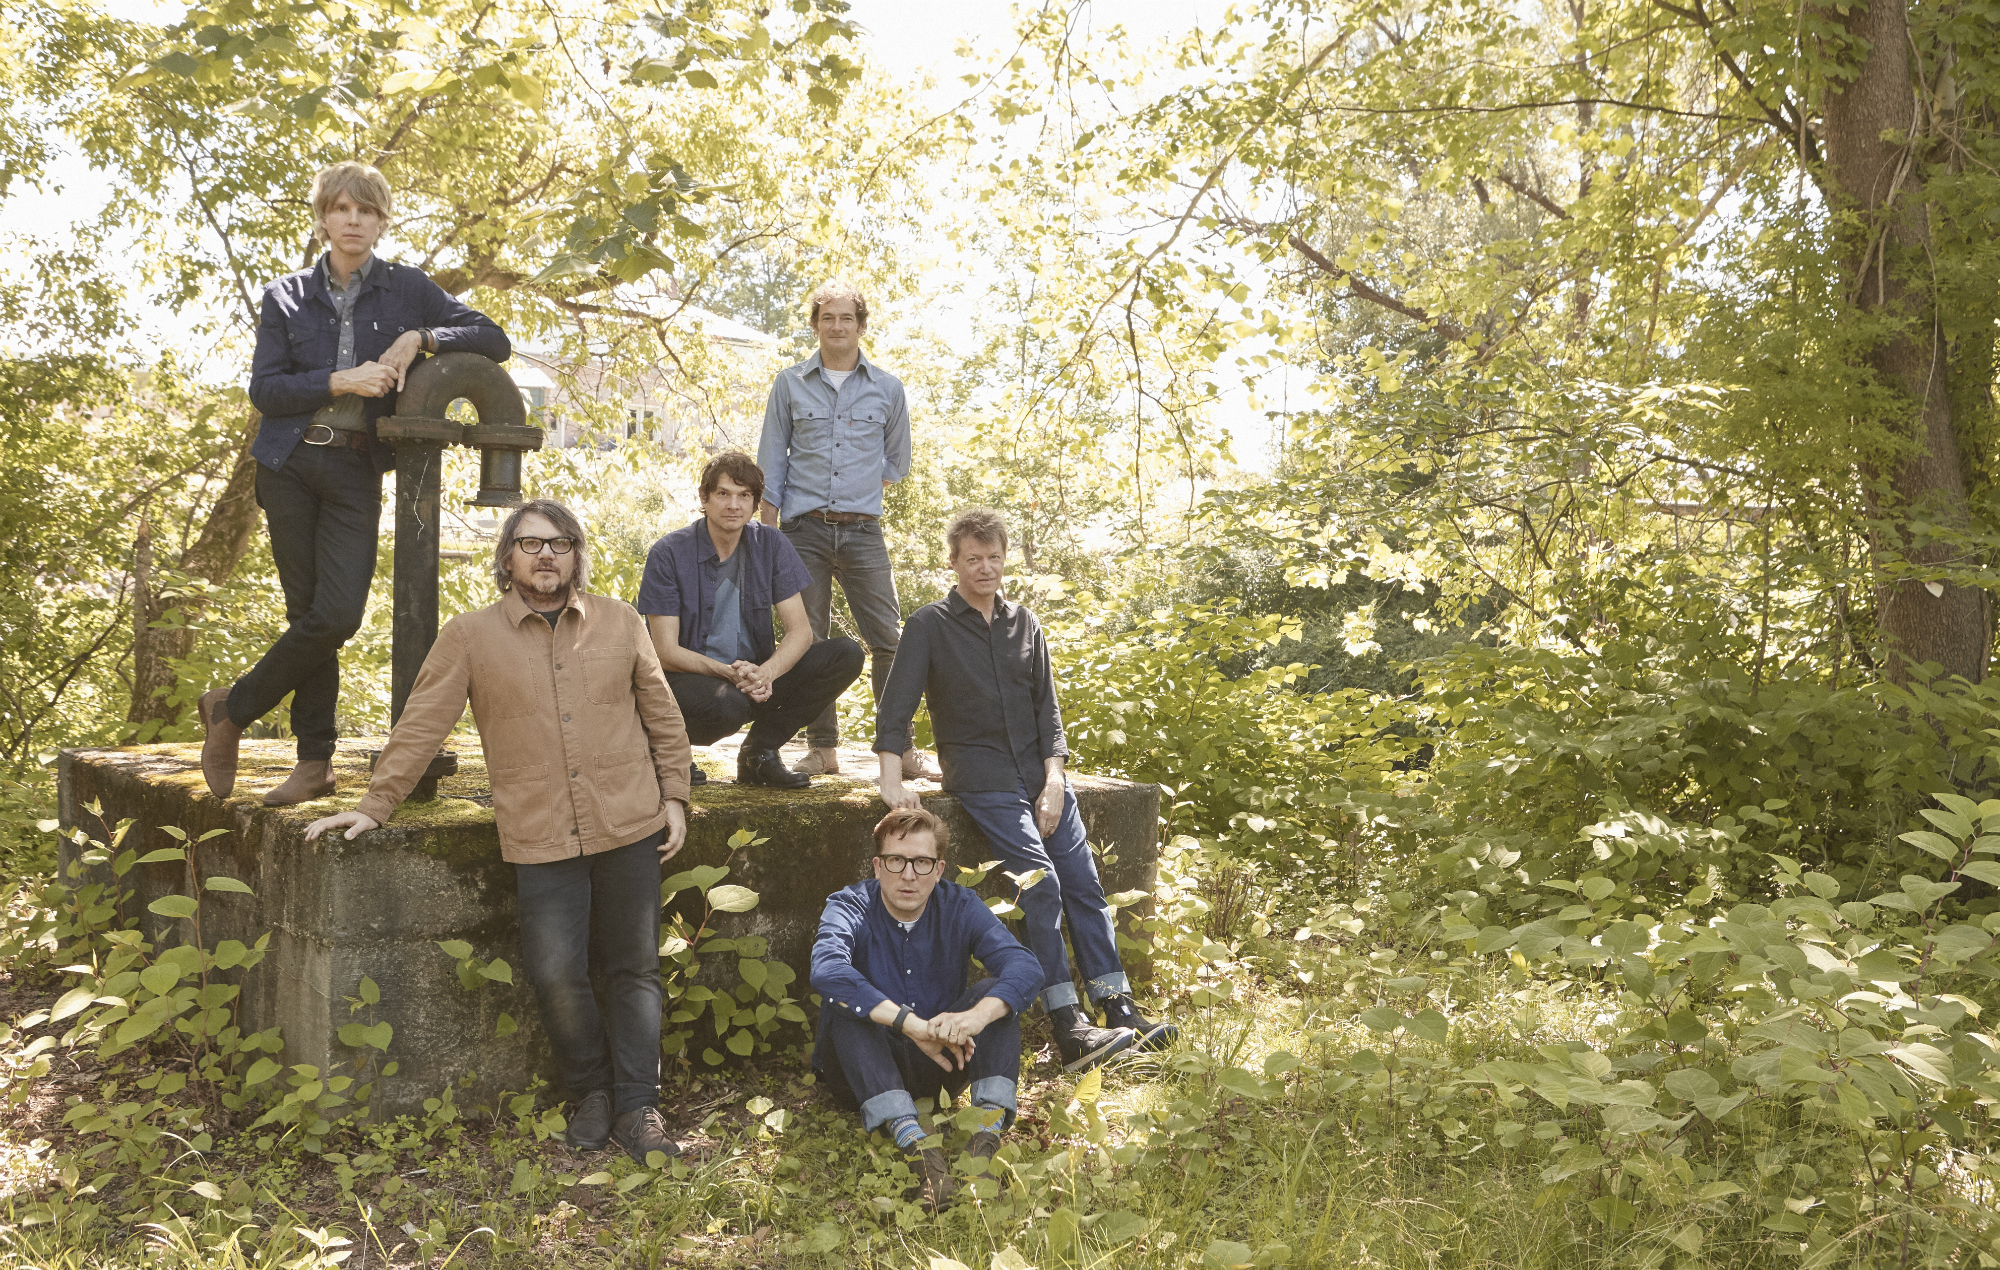 Wilco – 'An Ode to Joy' review: a quietly triumphant return to form